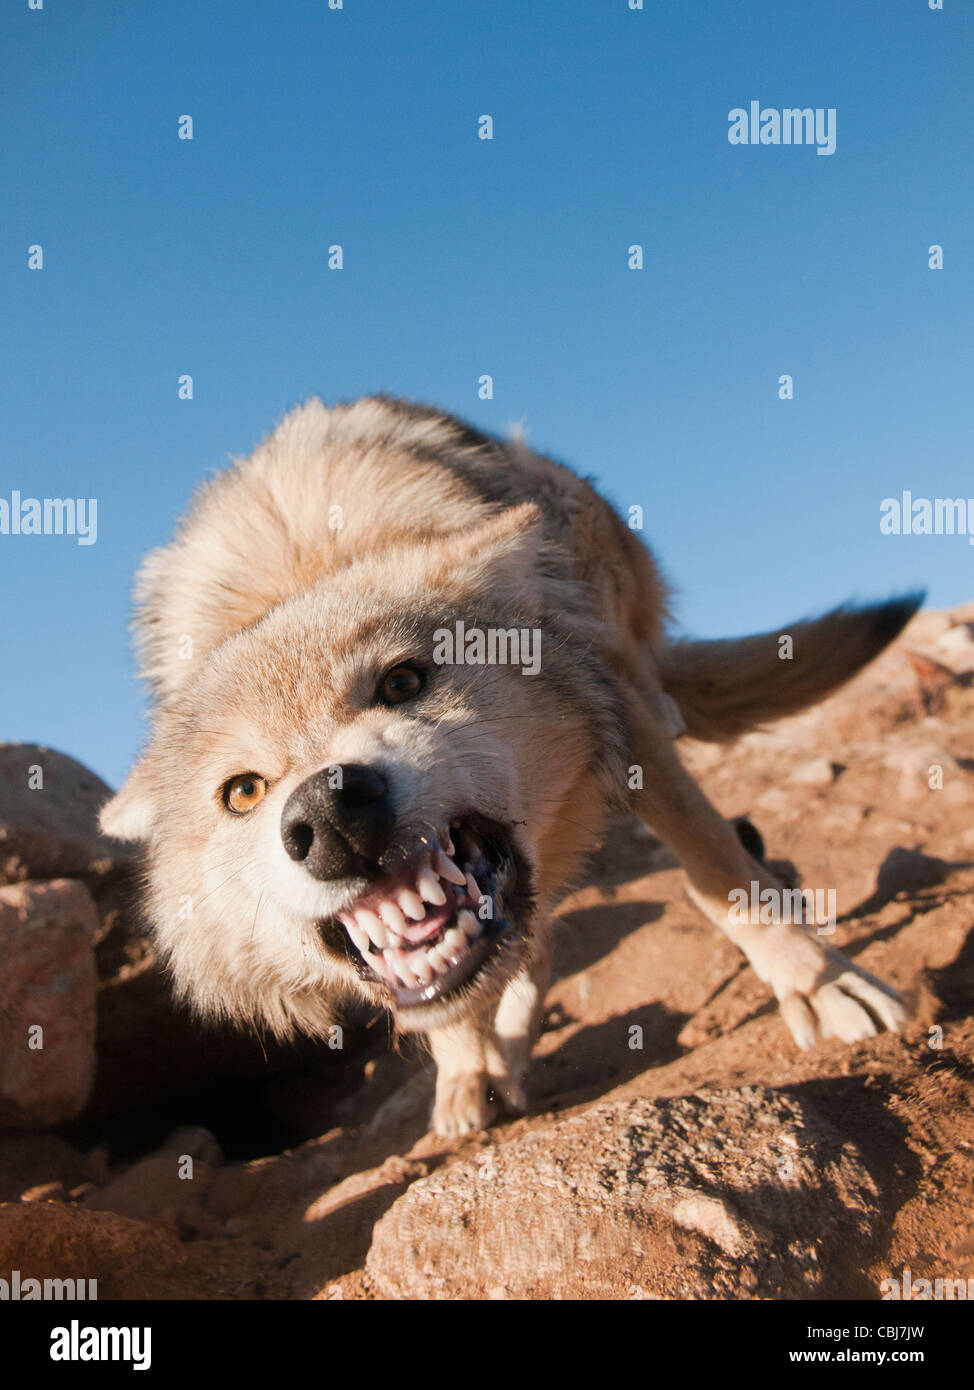 wild snarling wolf (canis lupis) in the Altai Region of Bayan-Ölgii in Western Mongolia - Stock Image